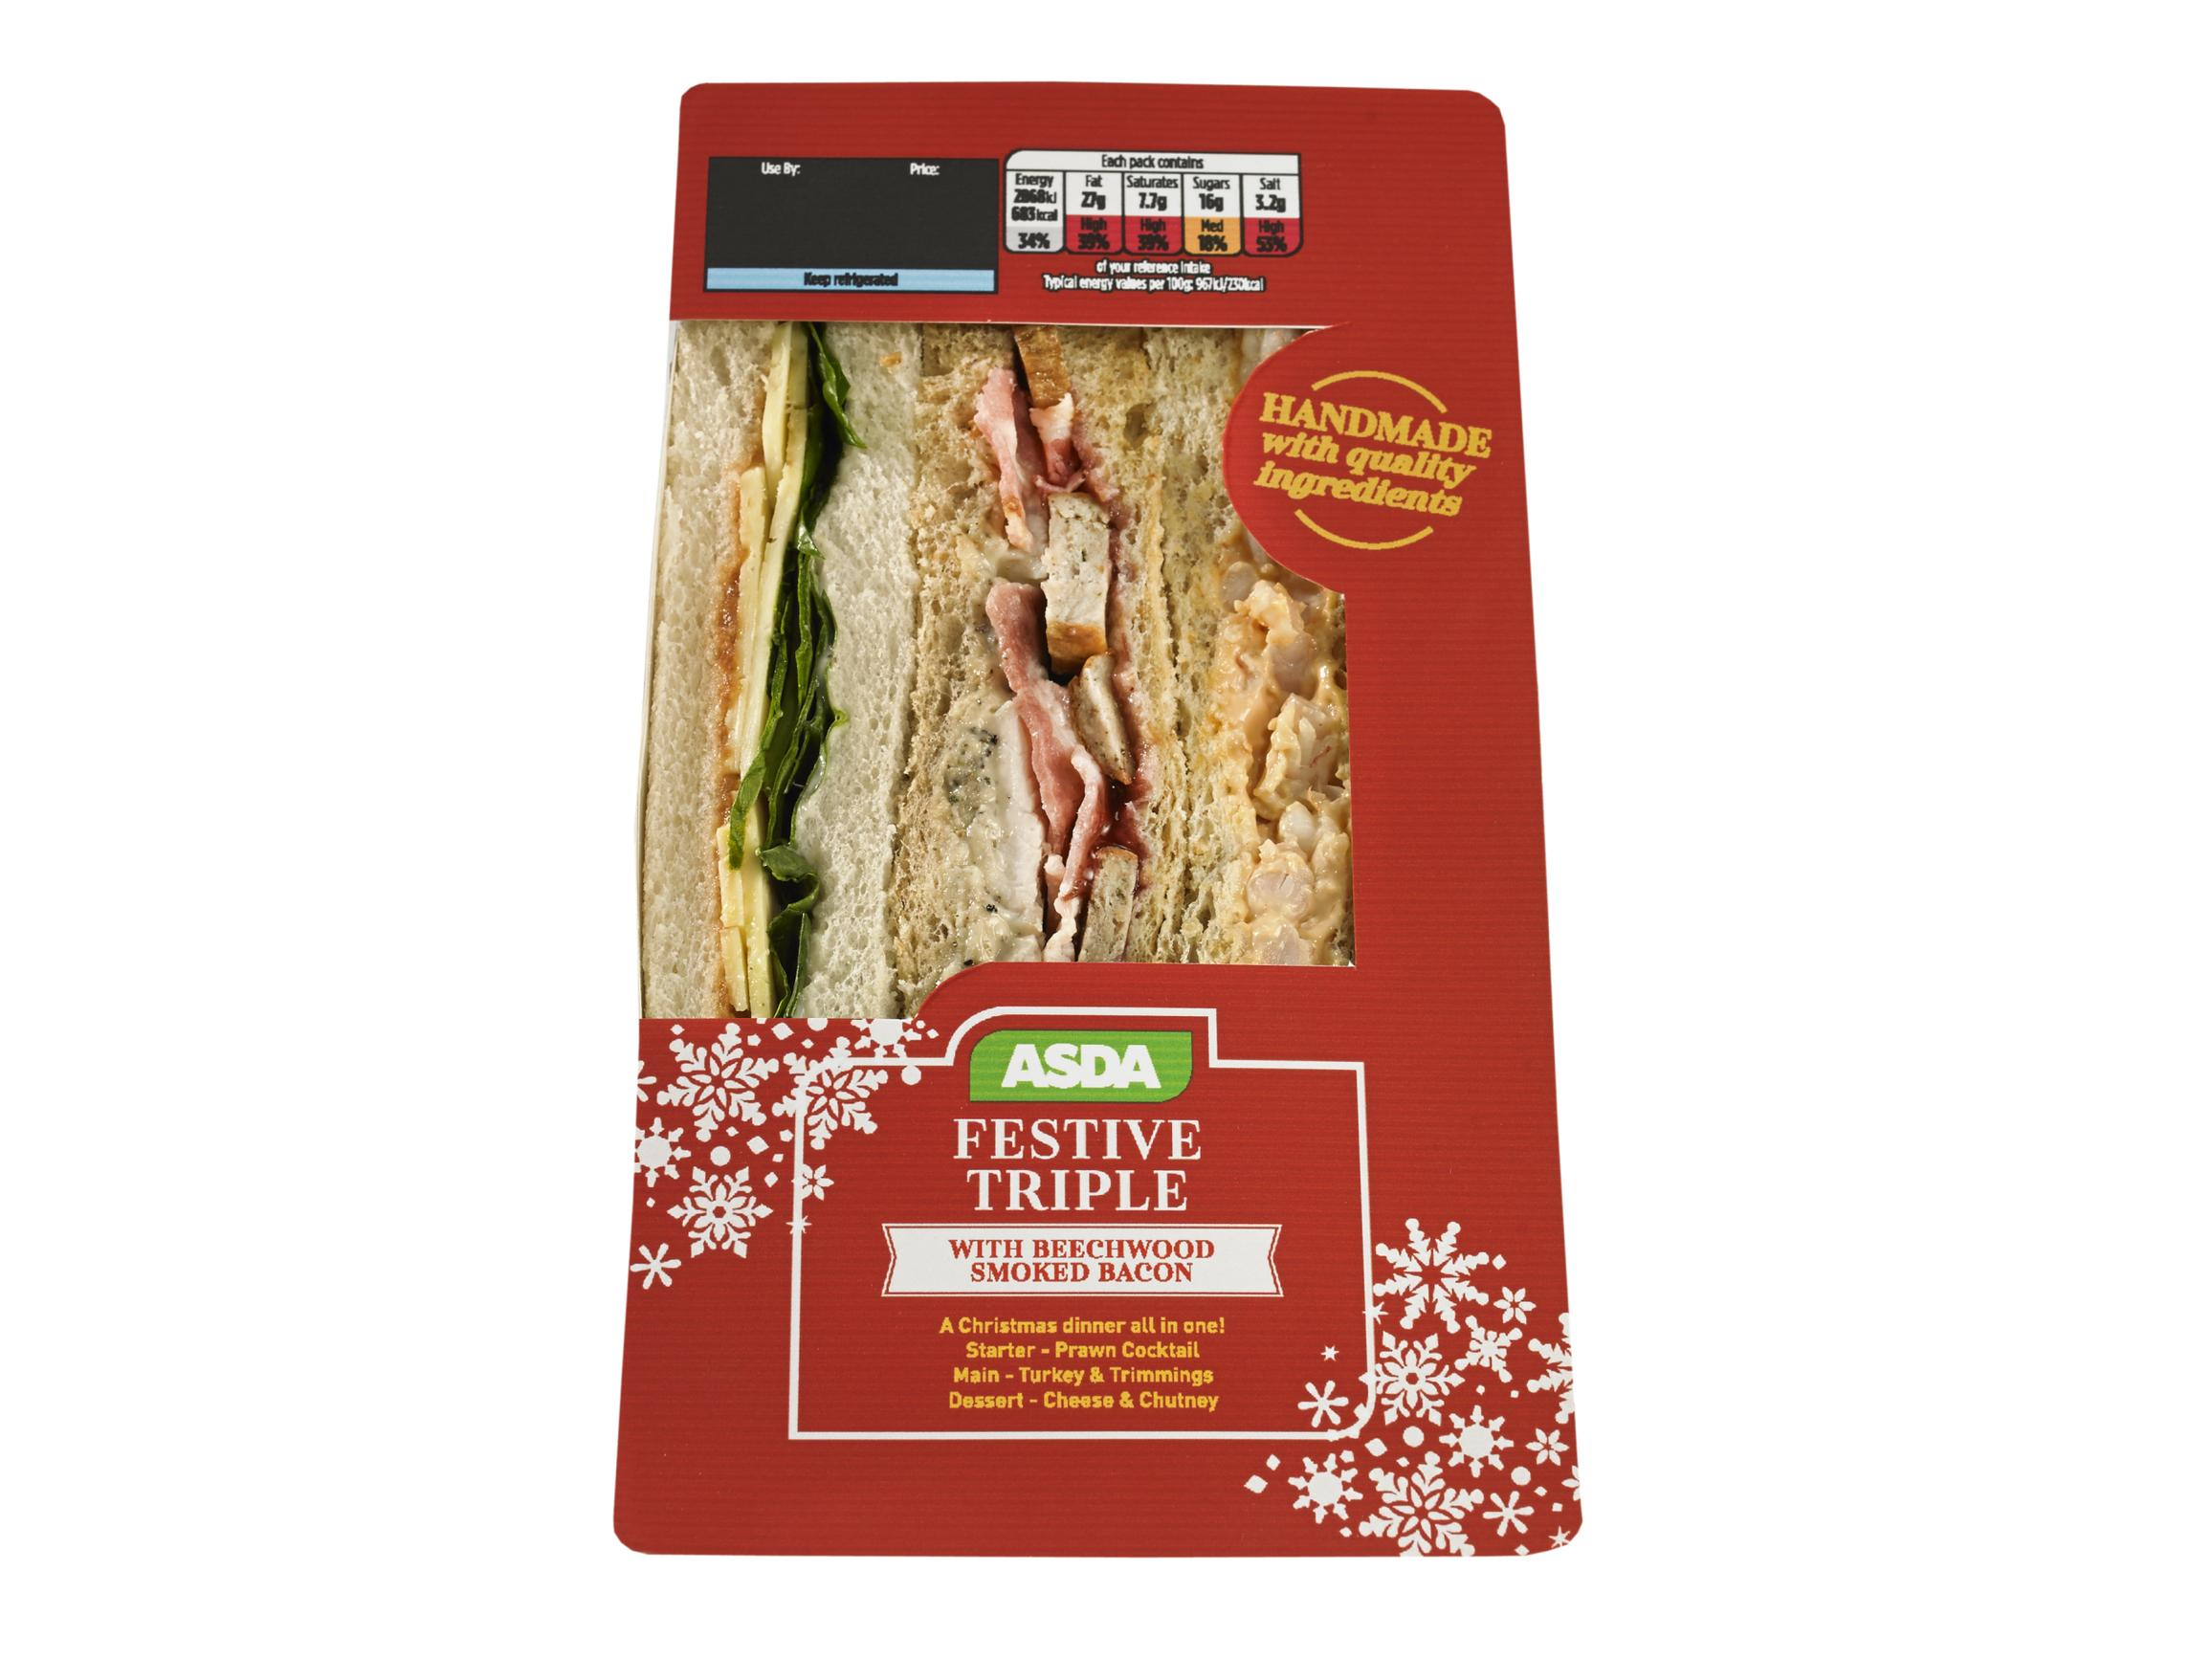 6 Best Christmas Sandwiches Of 2018 The Independent